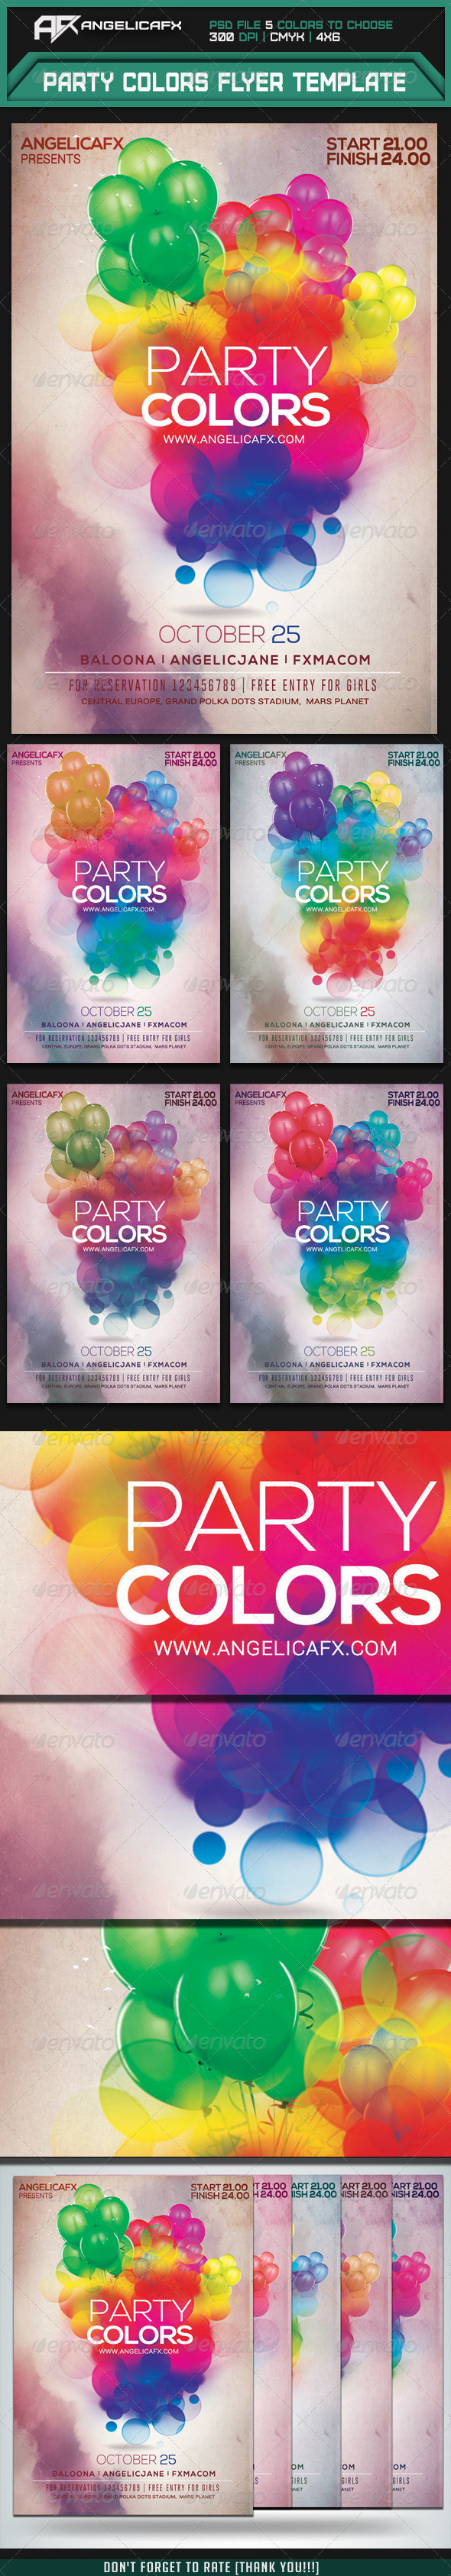 Party Colors Flyer Template - Flyers Print Templates